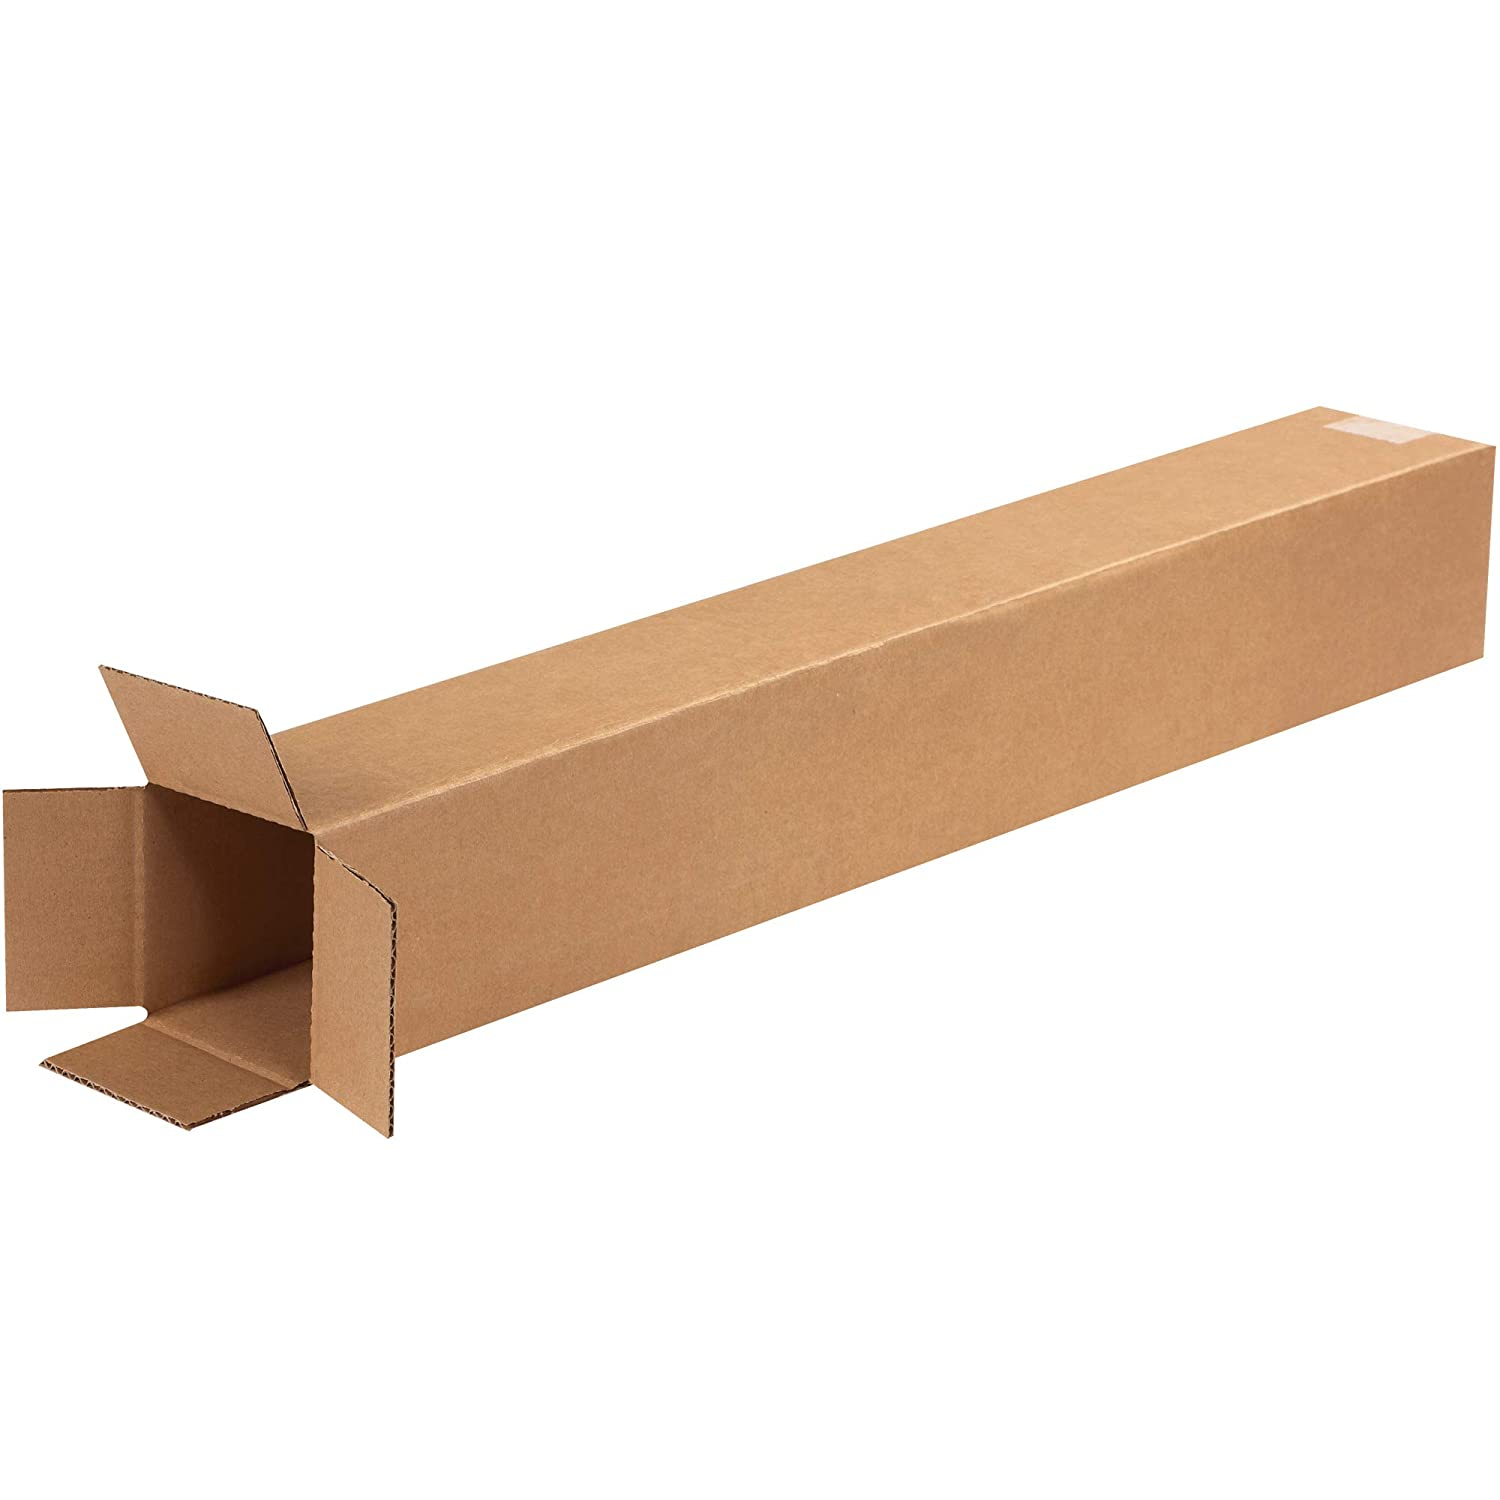 Aviditi Recyclable Corrugated Cardboard Manufacturer regenerated product Boxes 4